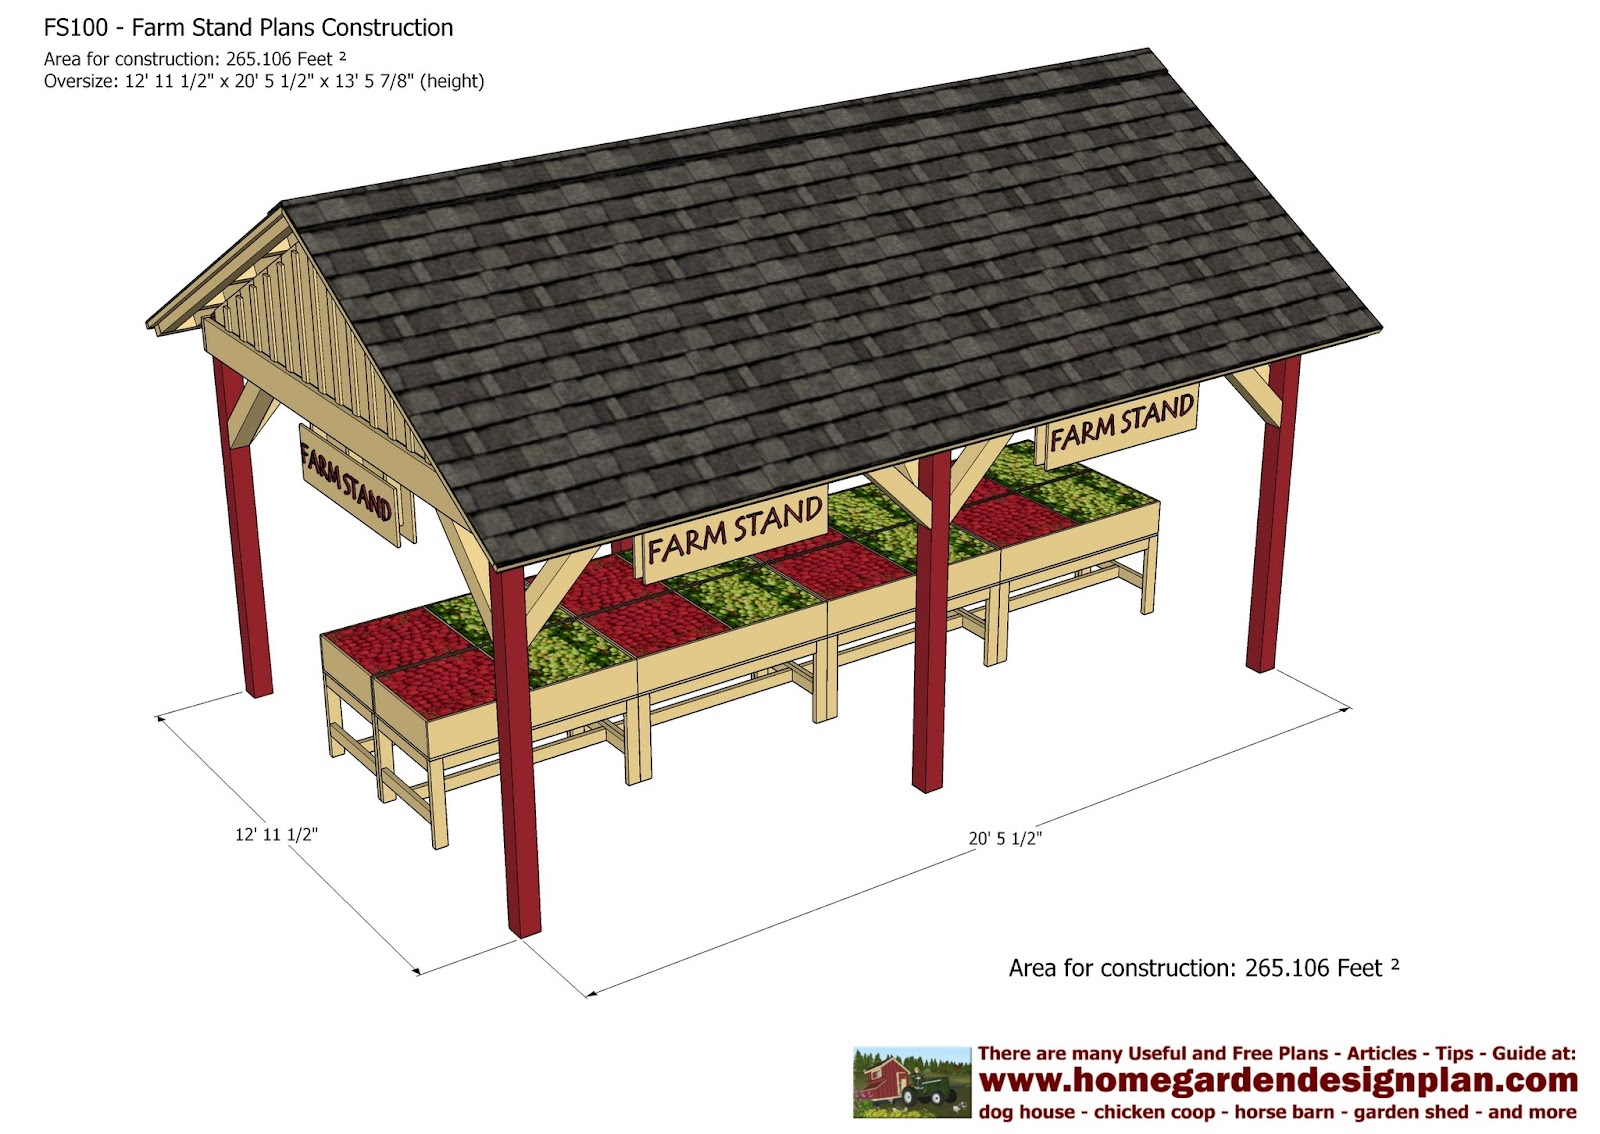 home garden plans FS100 Farm Stand Plans Construction